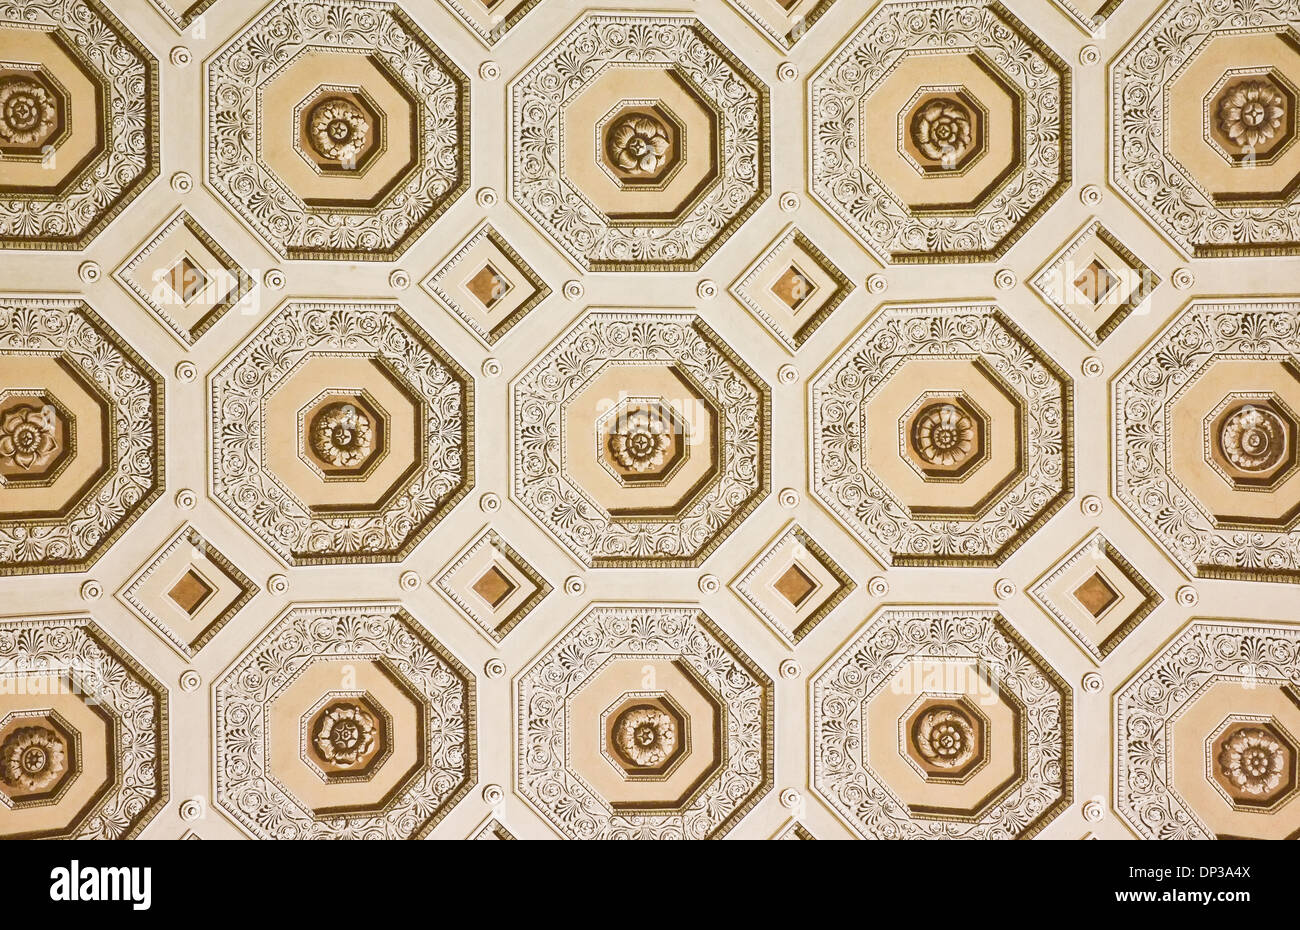 Ceiling details in Vatican Rome Italy - Stock Image